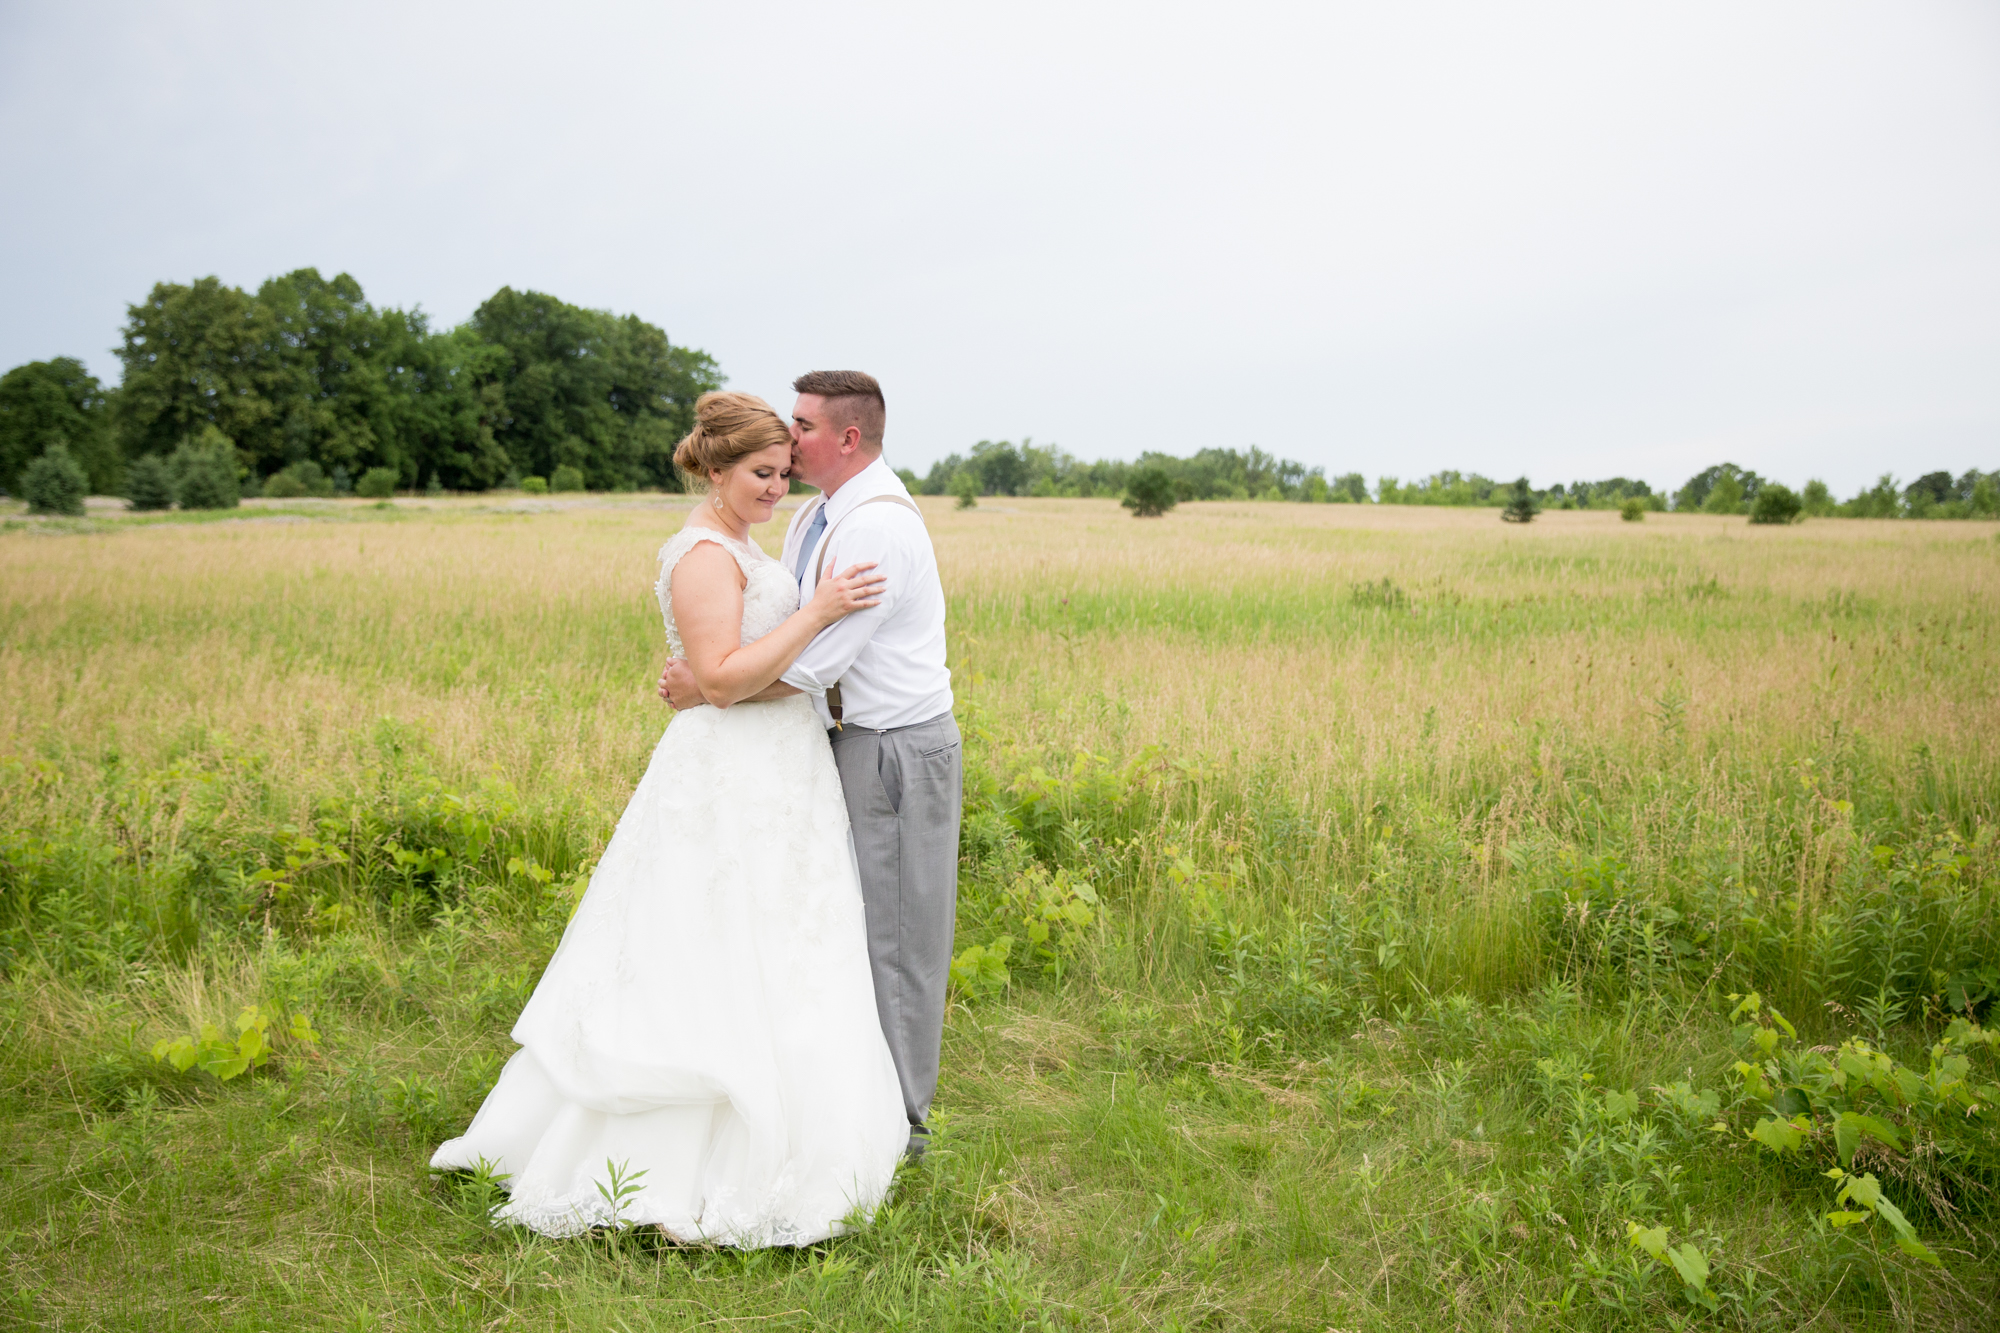 Homestead Meadows Wedding in Appleton Wisconsin - Whit Meza Photography